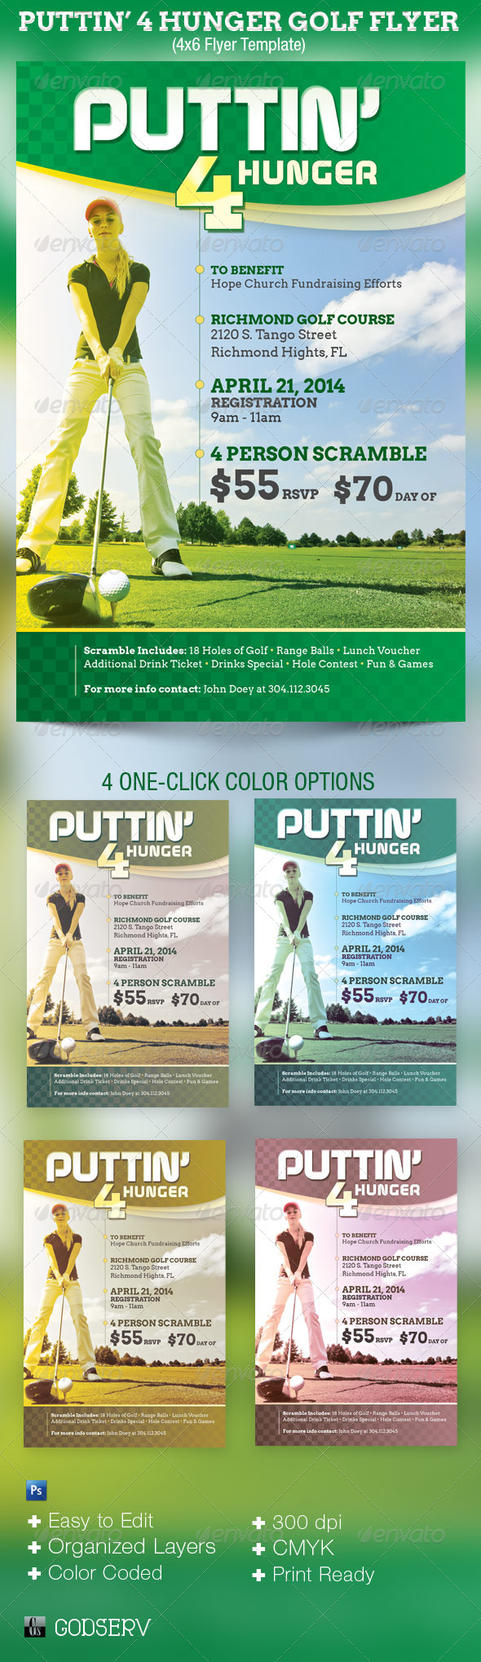 puttin 4 hunger charity golf flyer template by godserv on deviantart. Black Bedroom Furniture Sets. Home Design Ideas